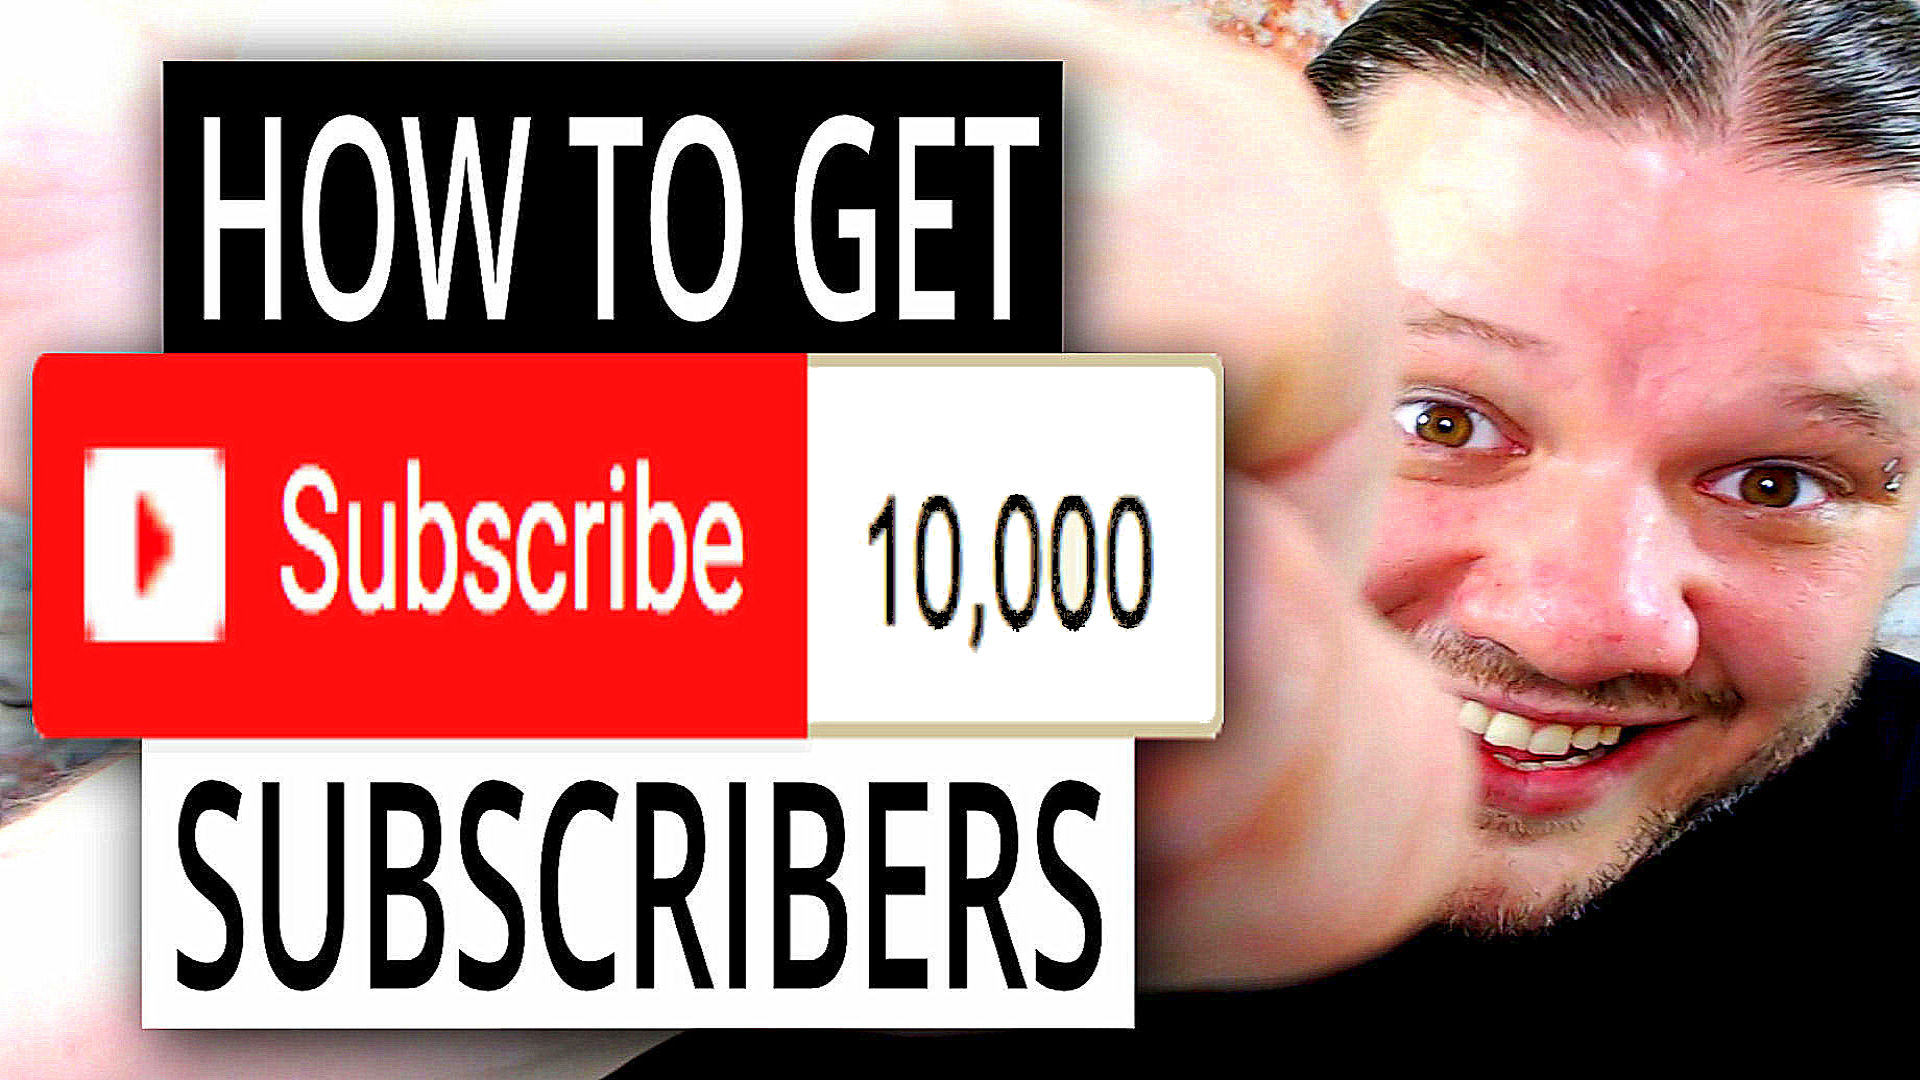 alan spicer,alanspicer,youtube tips,get 10000 subscribers,how to get 10000 subscribers on youtube,10000 subscribers,get subscribers on youtube,how to get 10000 subscribers on youtube fast,how to get subscribers on youtube,get subscribers,subscribers on youtube,get youtube subscribers,how to get 1000 subscribers on youtube,get more subscribers,get more subscribers on youtube,get more subscribers fast,how to get youtube subscribers,spicer,youtube tricks,youtube